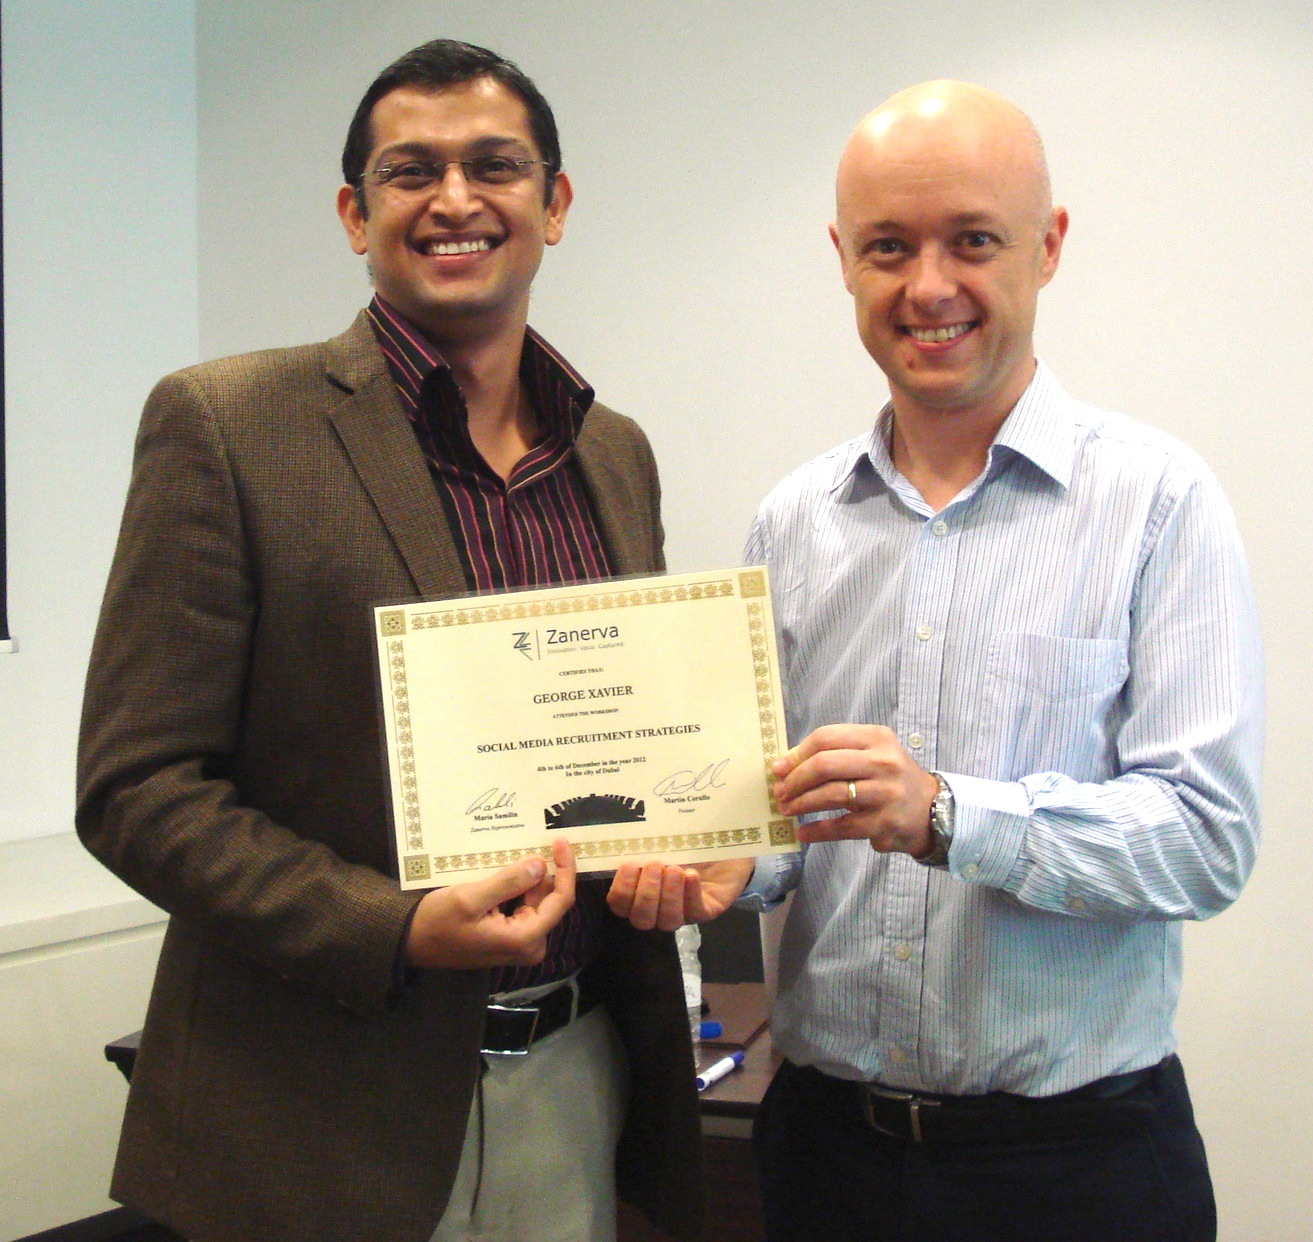 George Xavier receiving his certificate of workshop participation from  Martin Cerullo for attending the Social Media Recruitment in Dubai